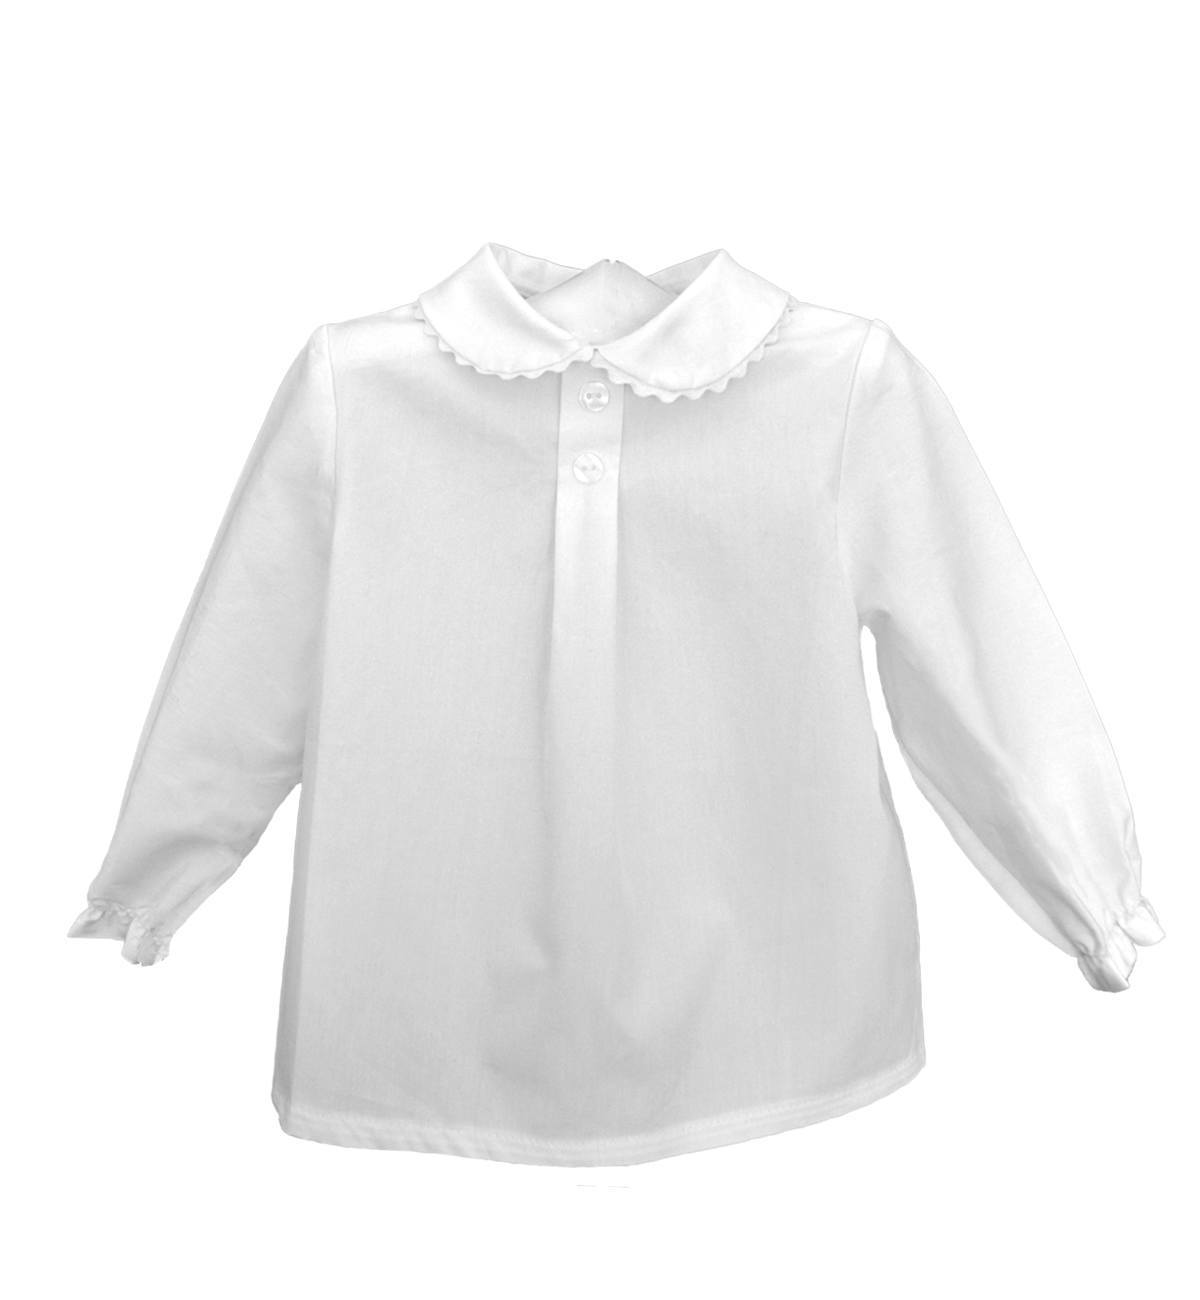 Spanish baby clothes | baby Shirts Baby Boy | 'Peter Pan' collar shirt (white) |babymaC  - 1